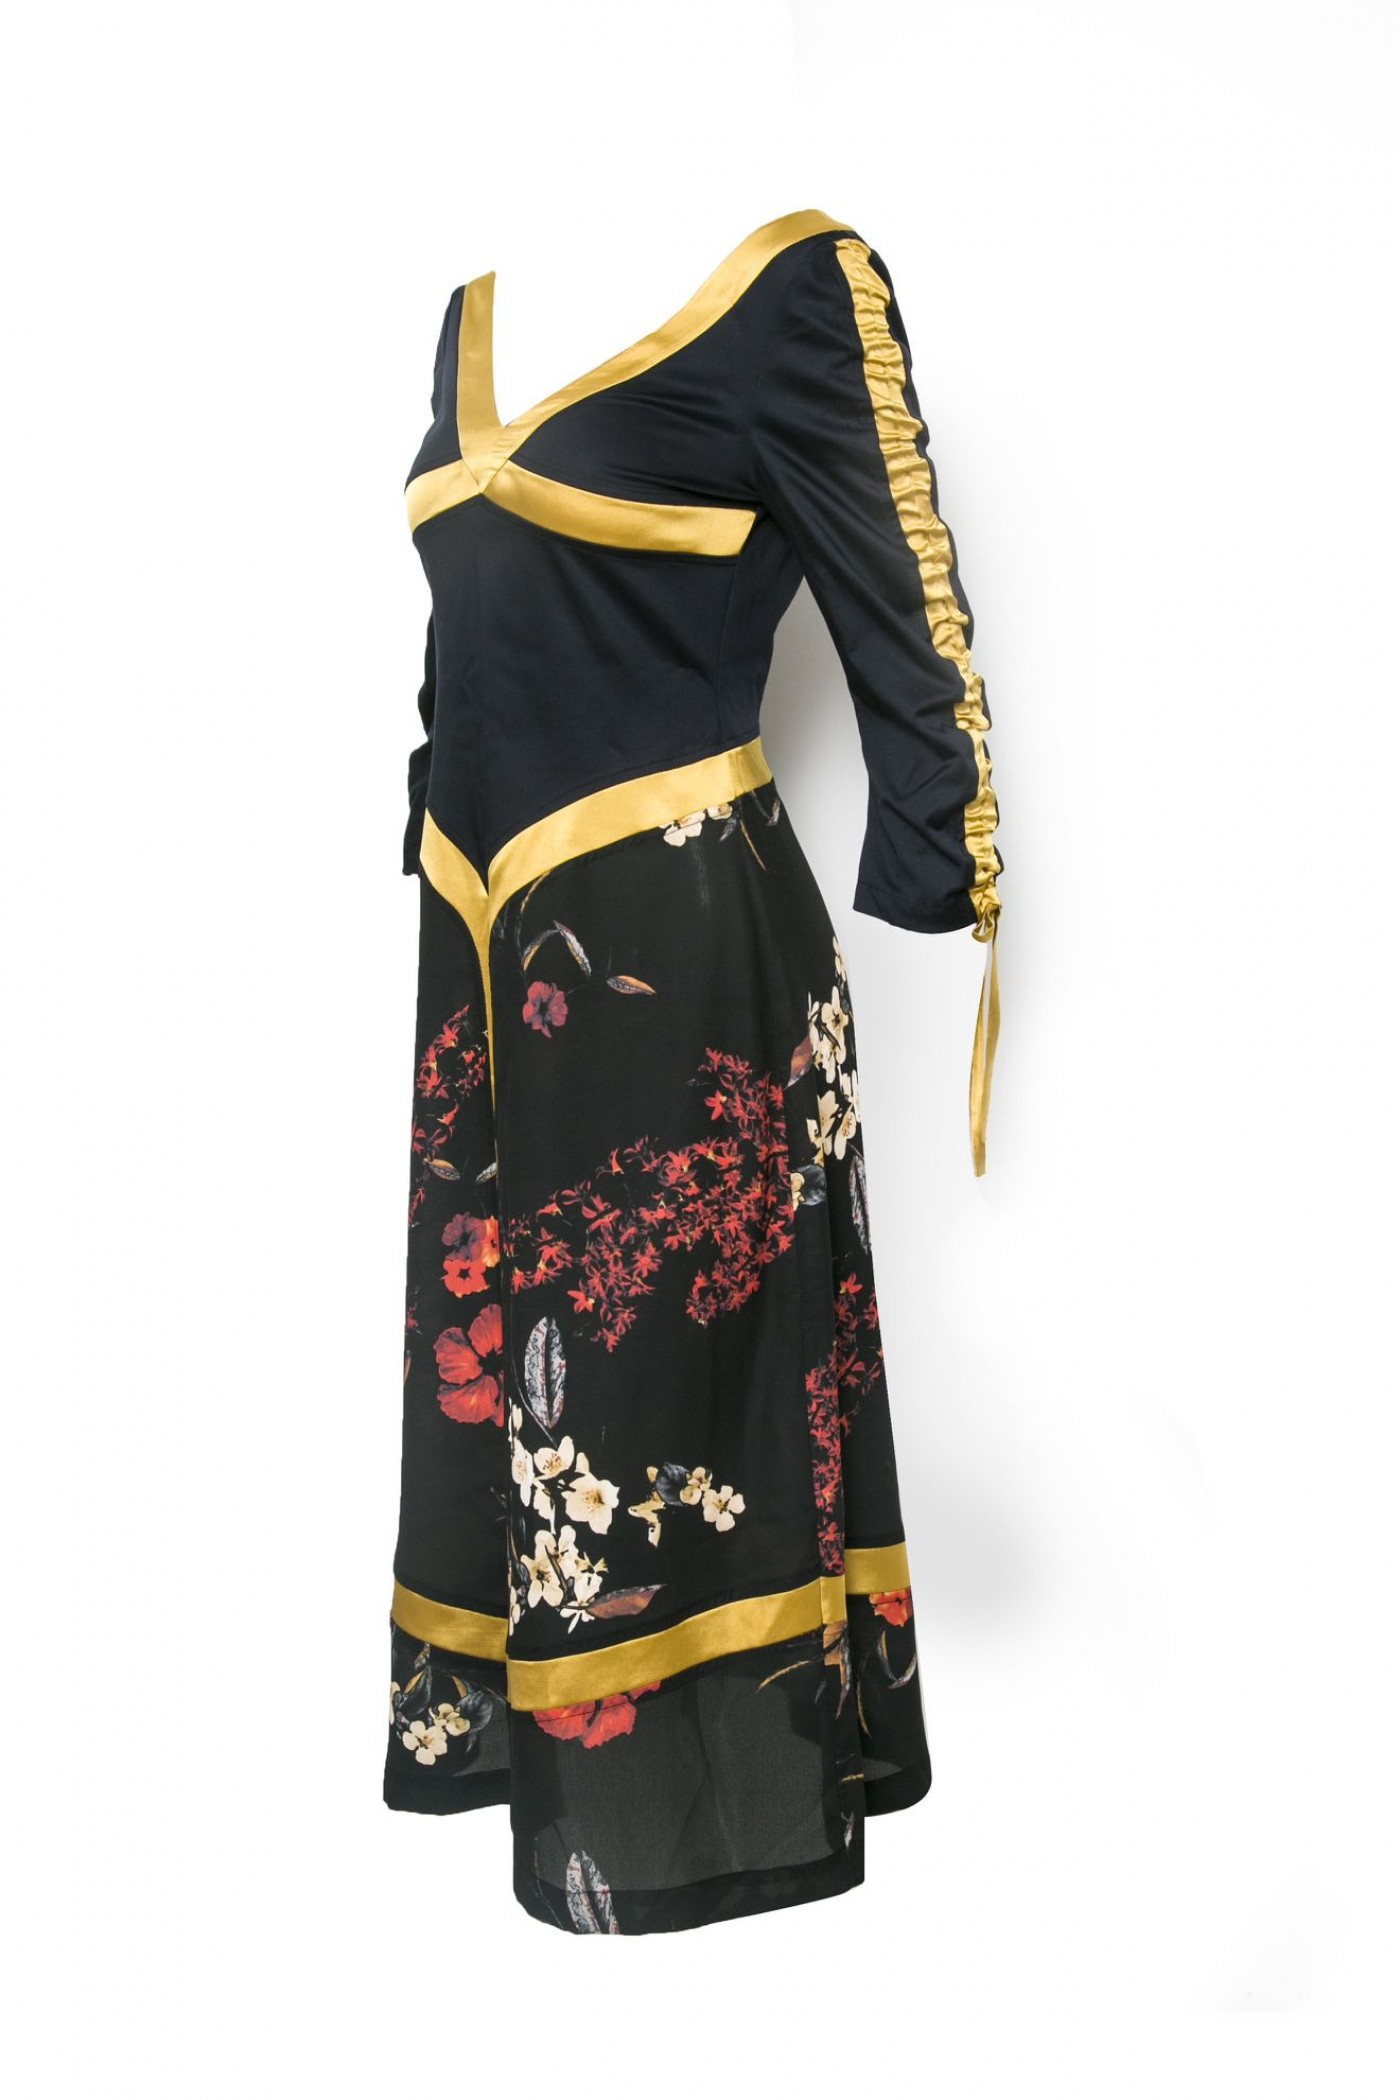 Dress with Gold Trim and Floral